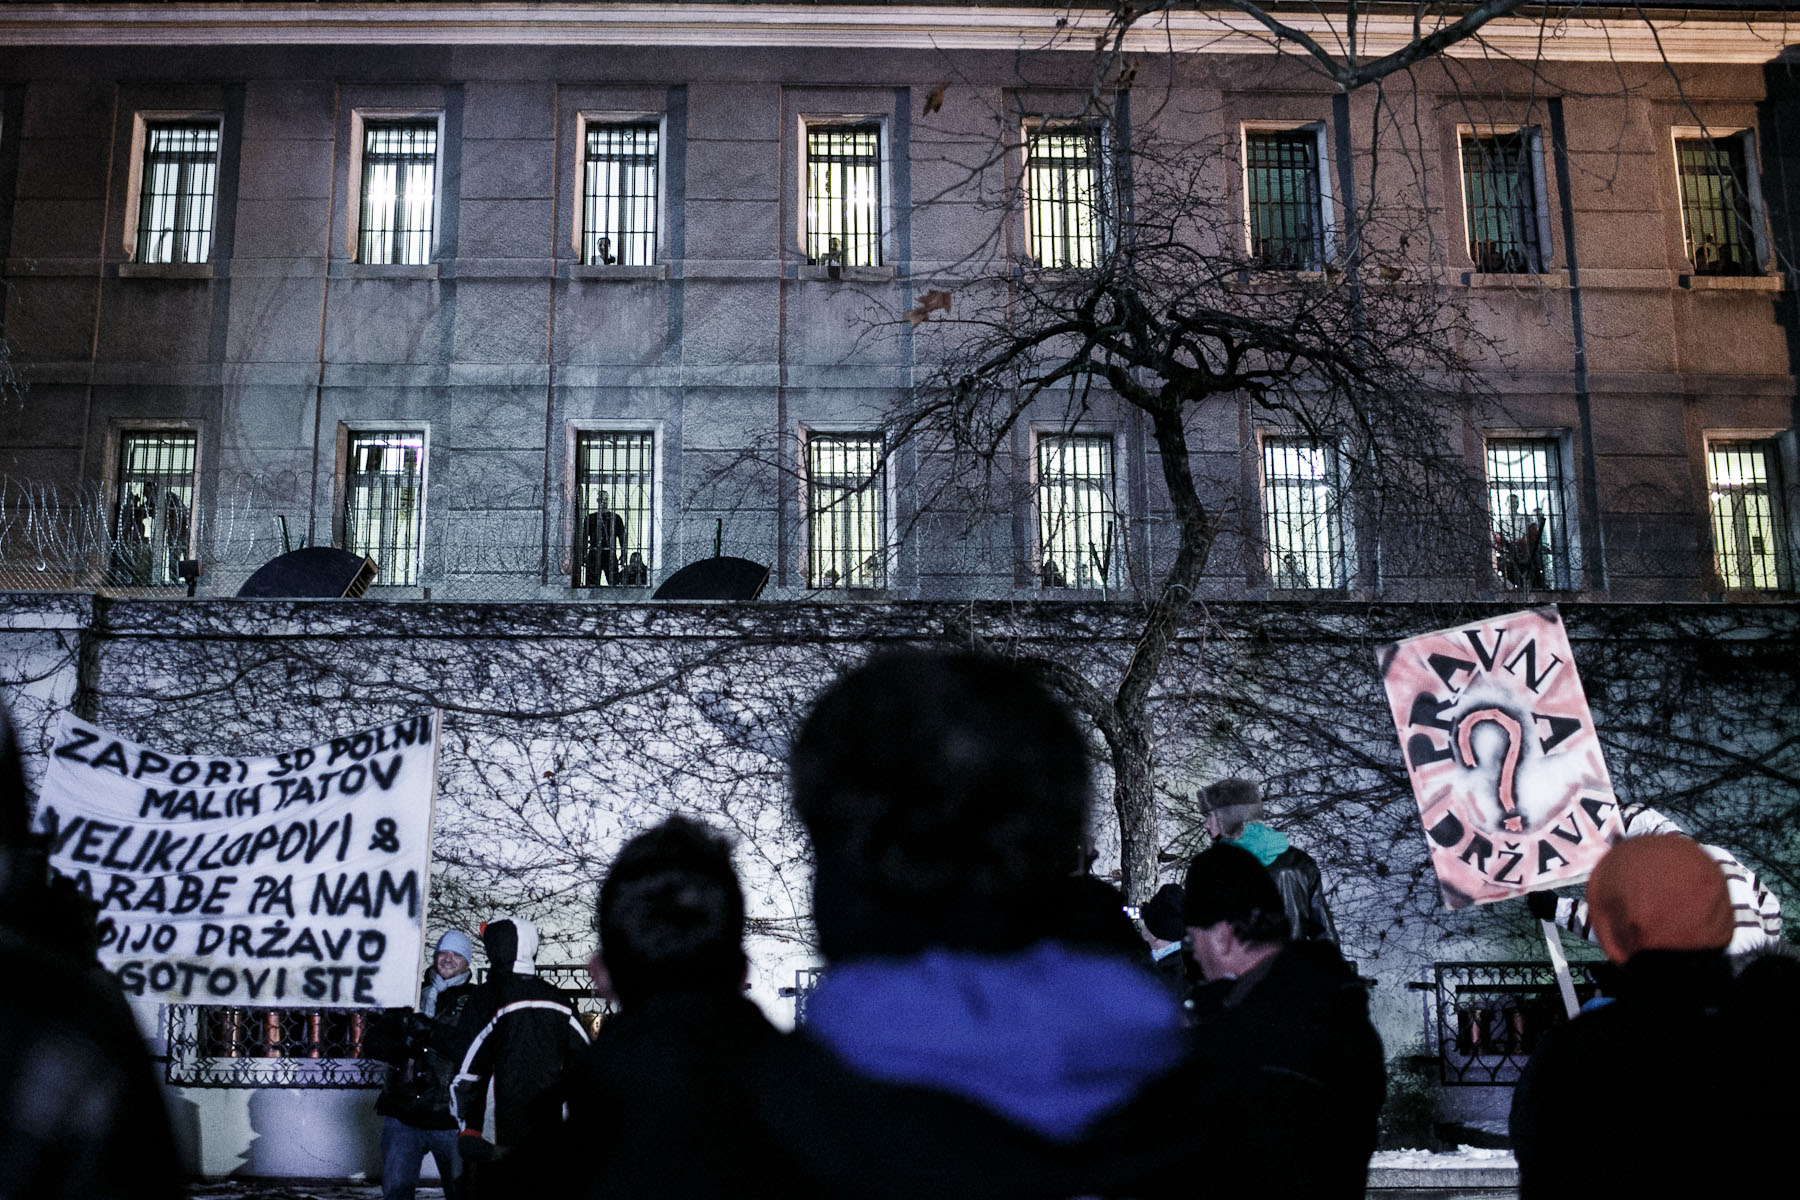 People protest outside the Maribor prisons demanding the release of protesters watching from the windows during a protest march against the mayor and the local government in Maribor, Slovenia, on December 14, 2012.